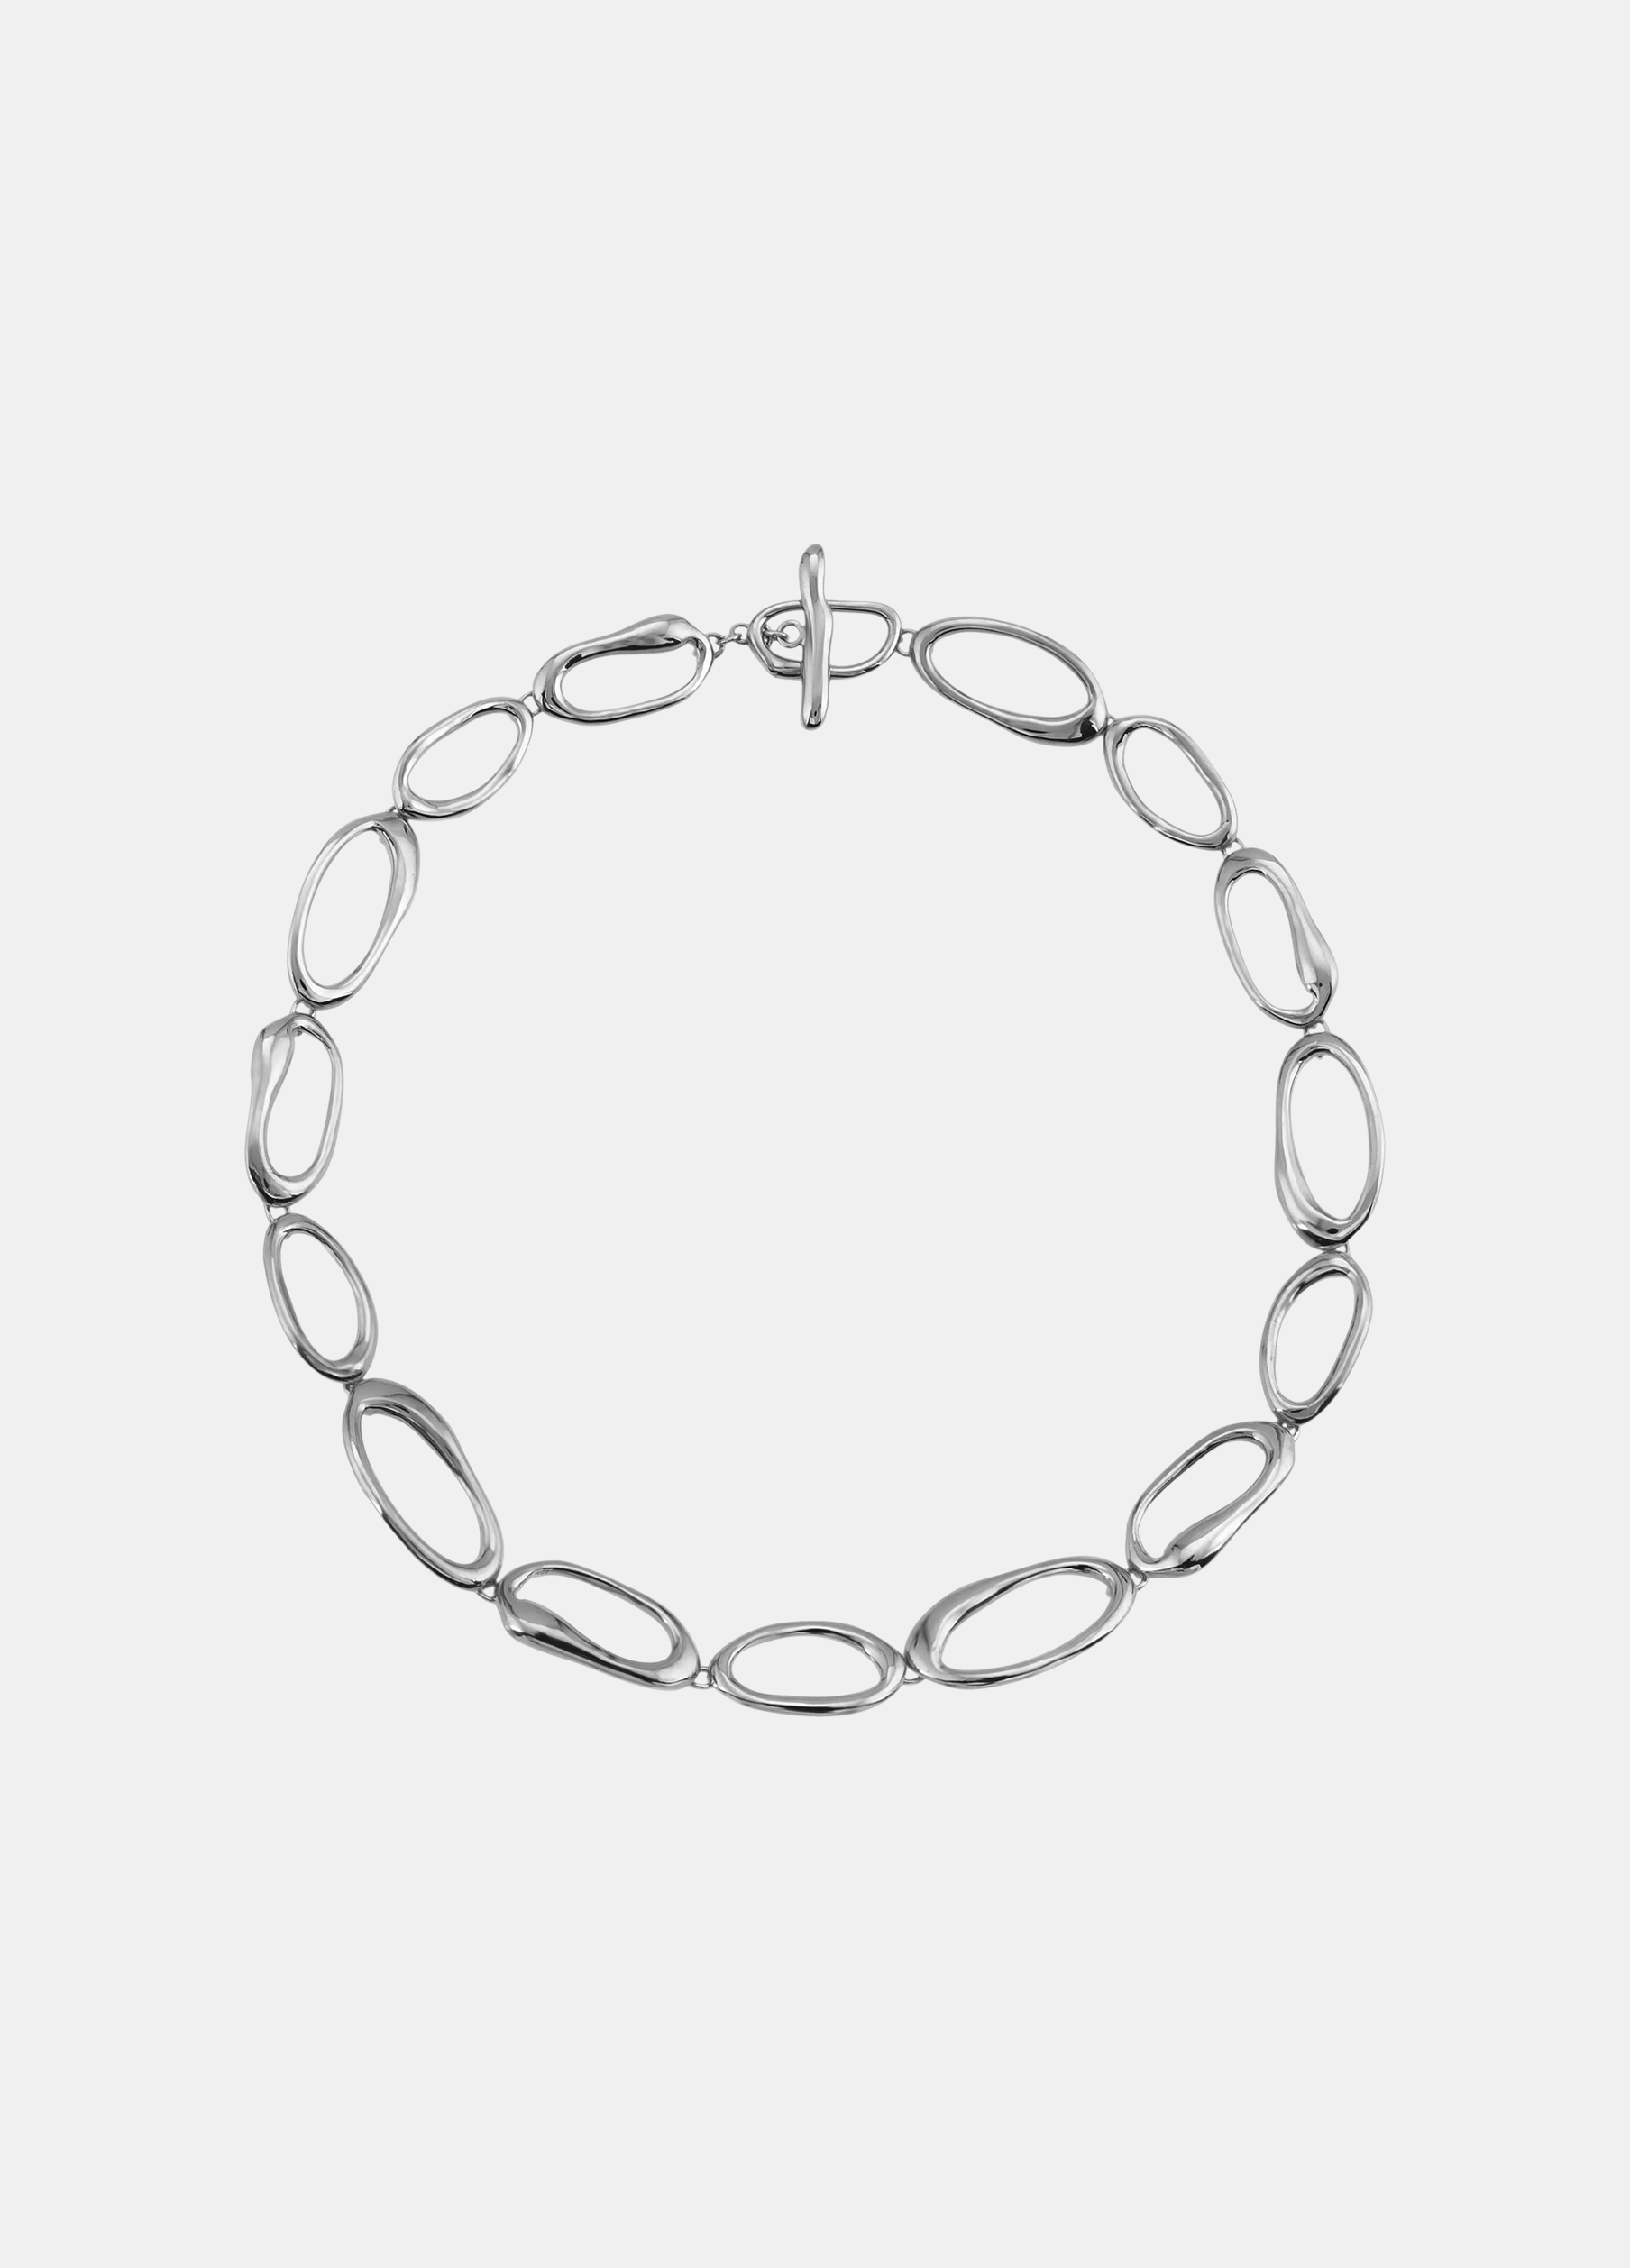 Modern Weaving / Hand Formed Mini Oval Link Chain Necklace